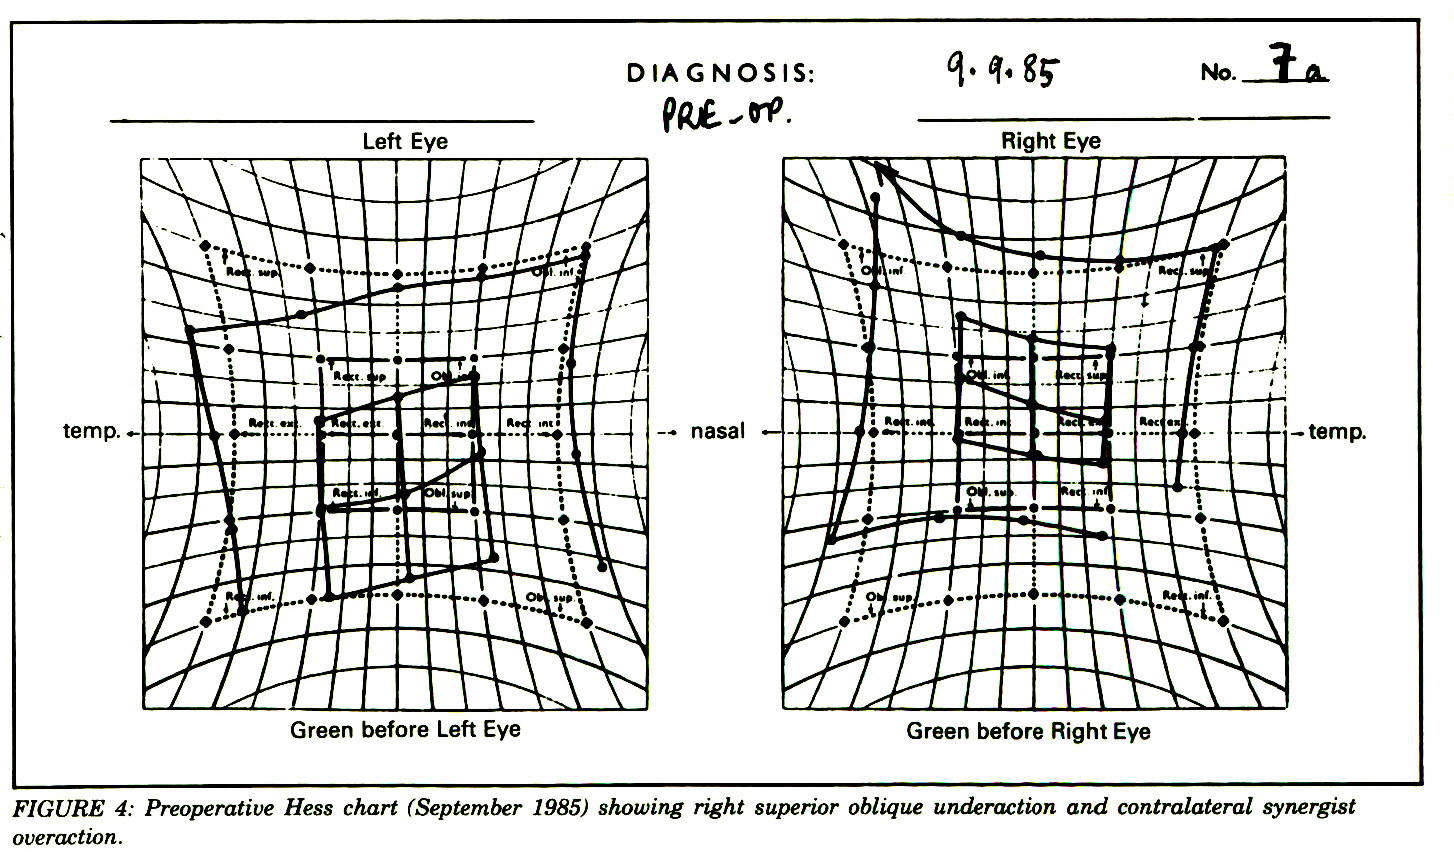 FIGURE 4: Preoperative Hess chart (September 1985) showing right superior oblique underaction and contralateral synergist overaction.